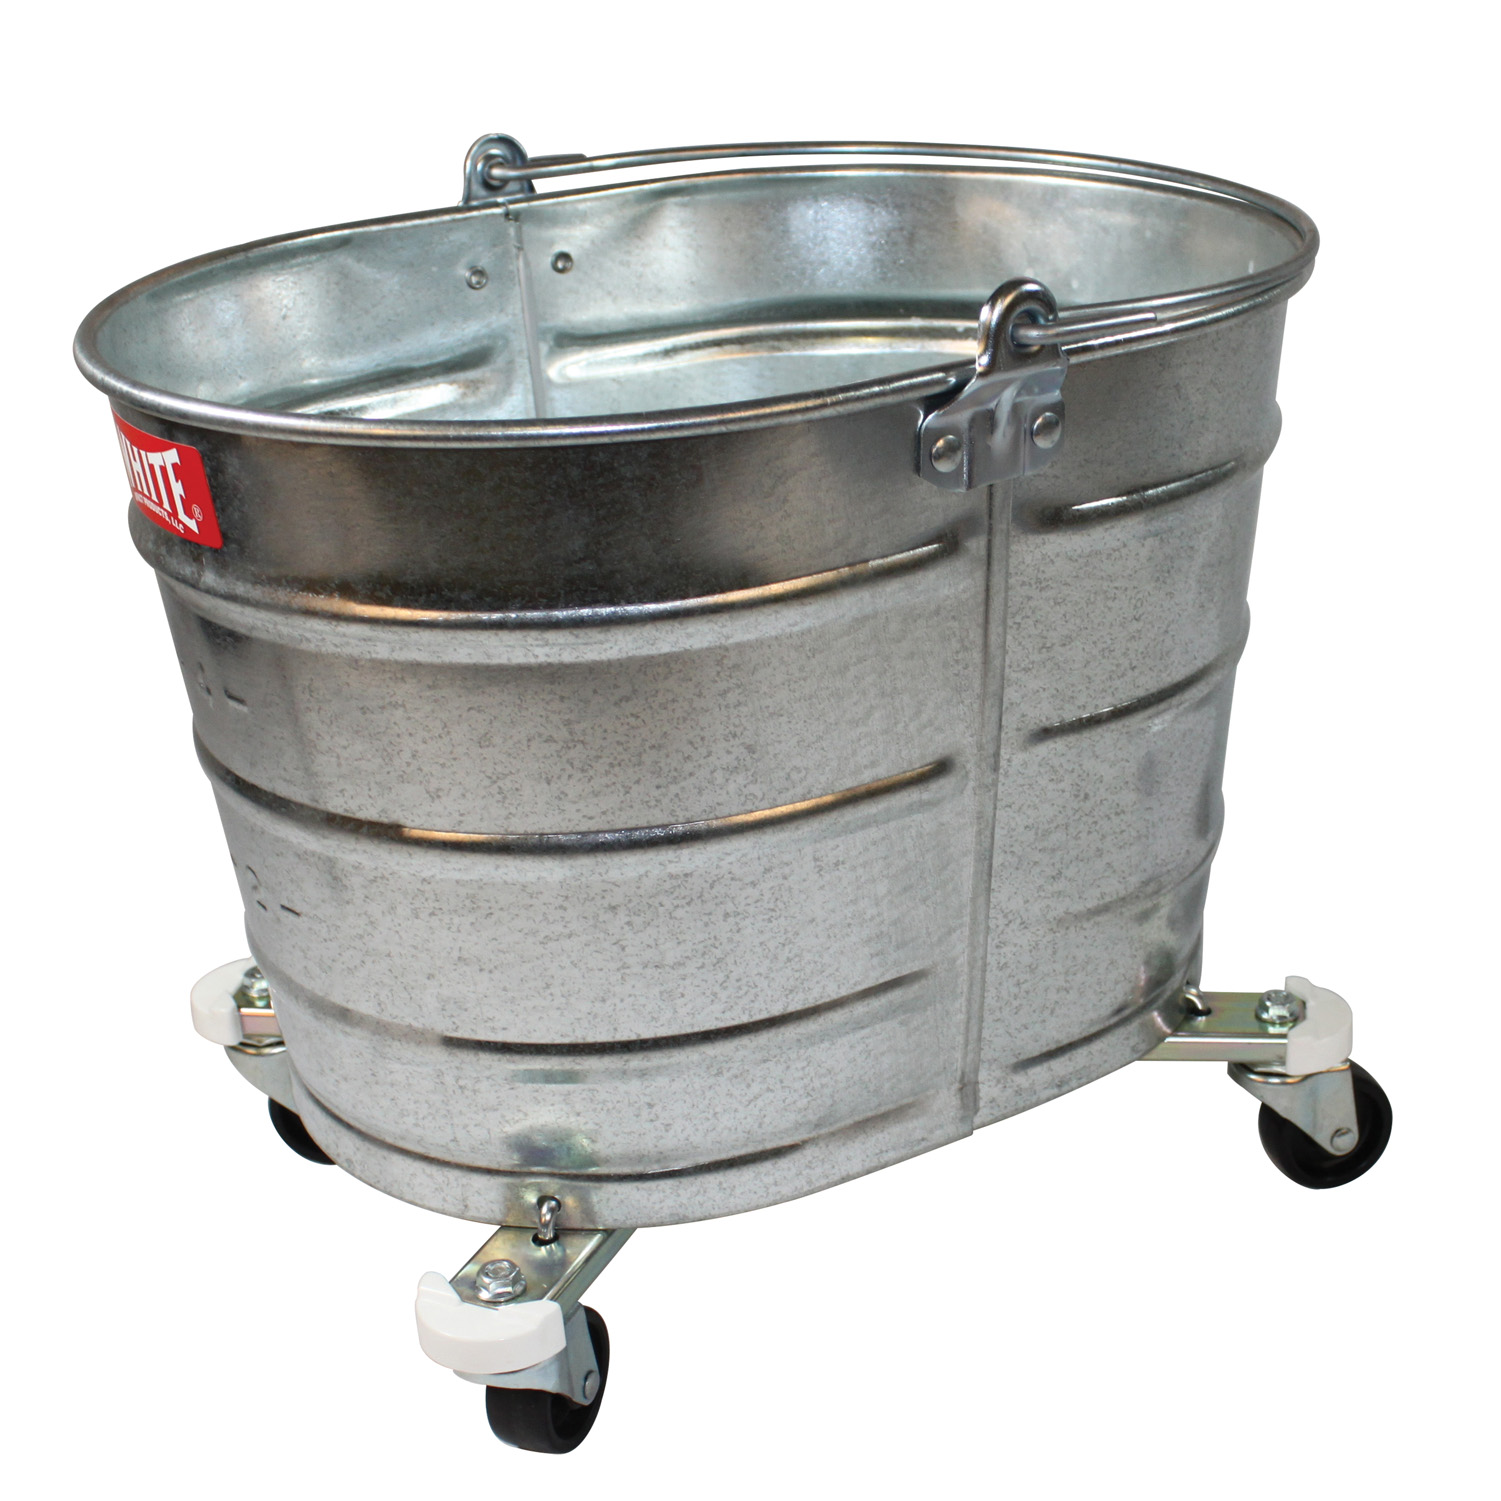 Impact Products 260 mop bucket